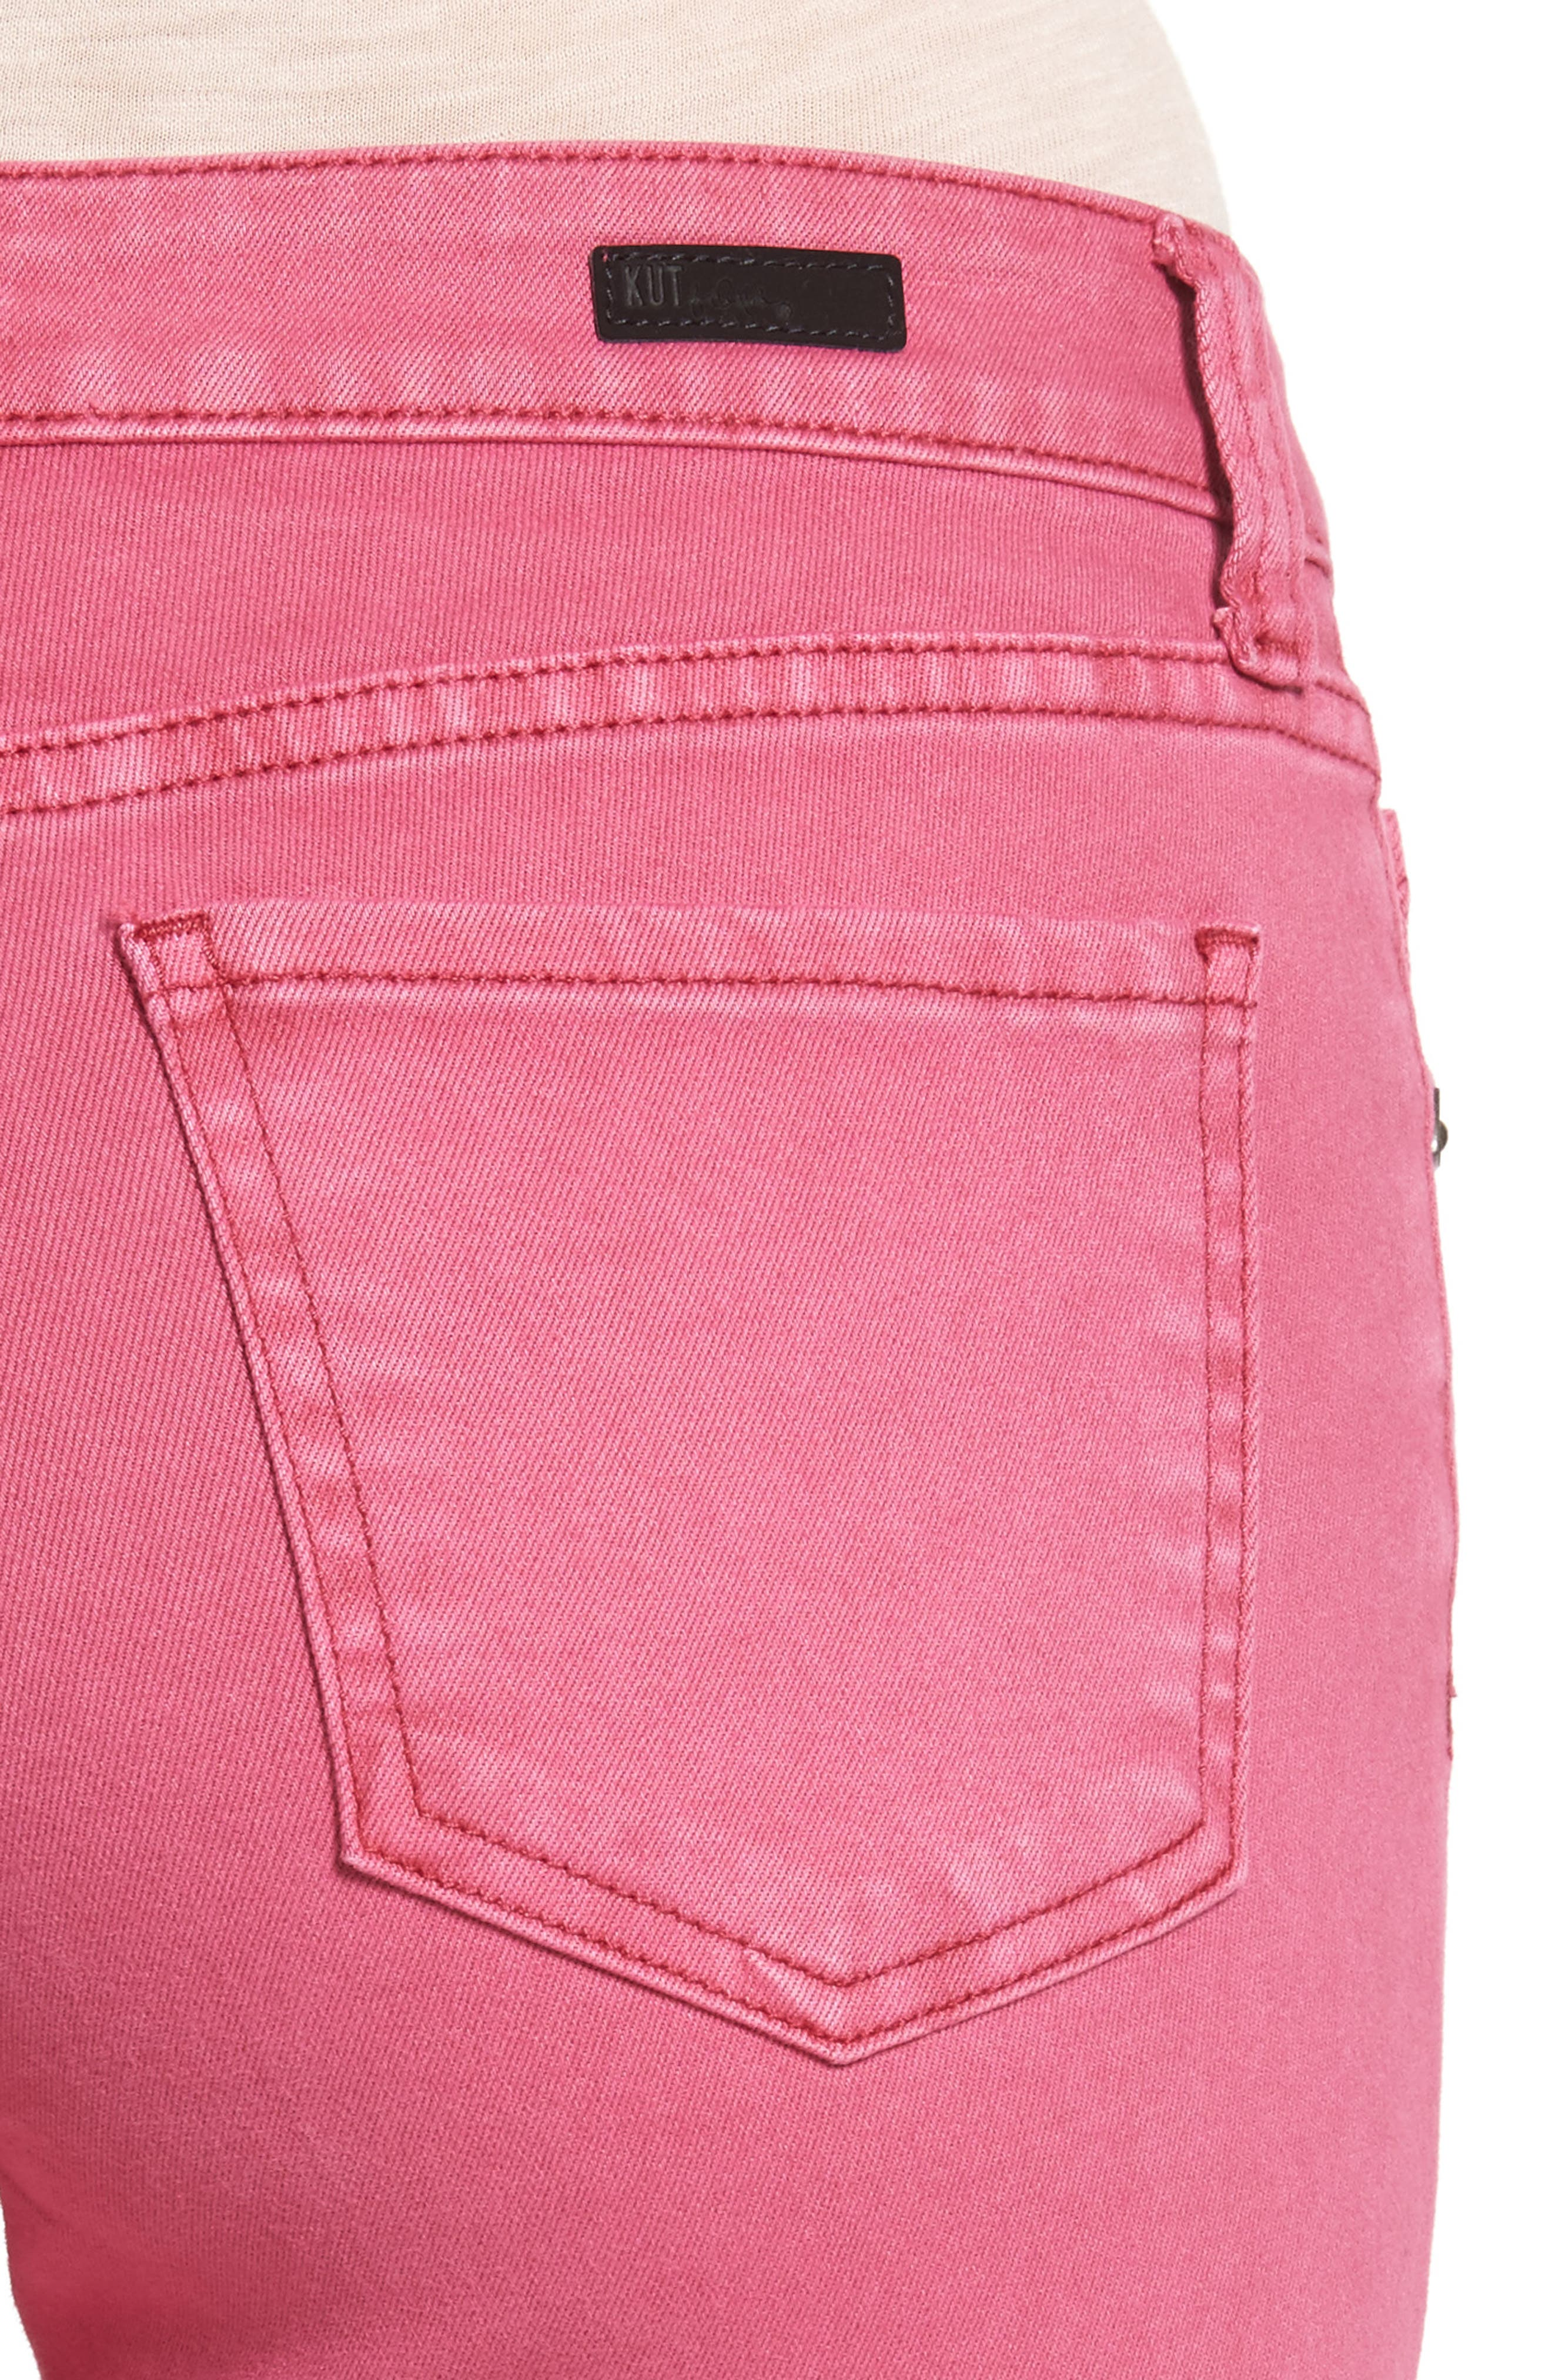 Alternate Image 4  - KUT from the Kloth Connie Frayed Hem Crop Skinny Jeans (Hot Pink)